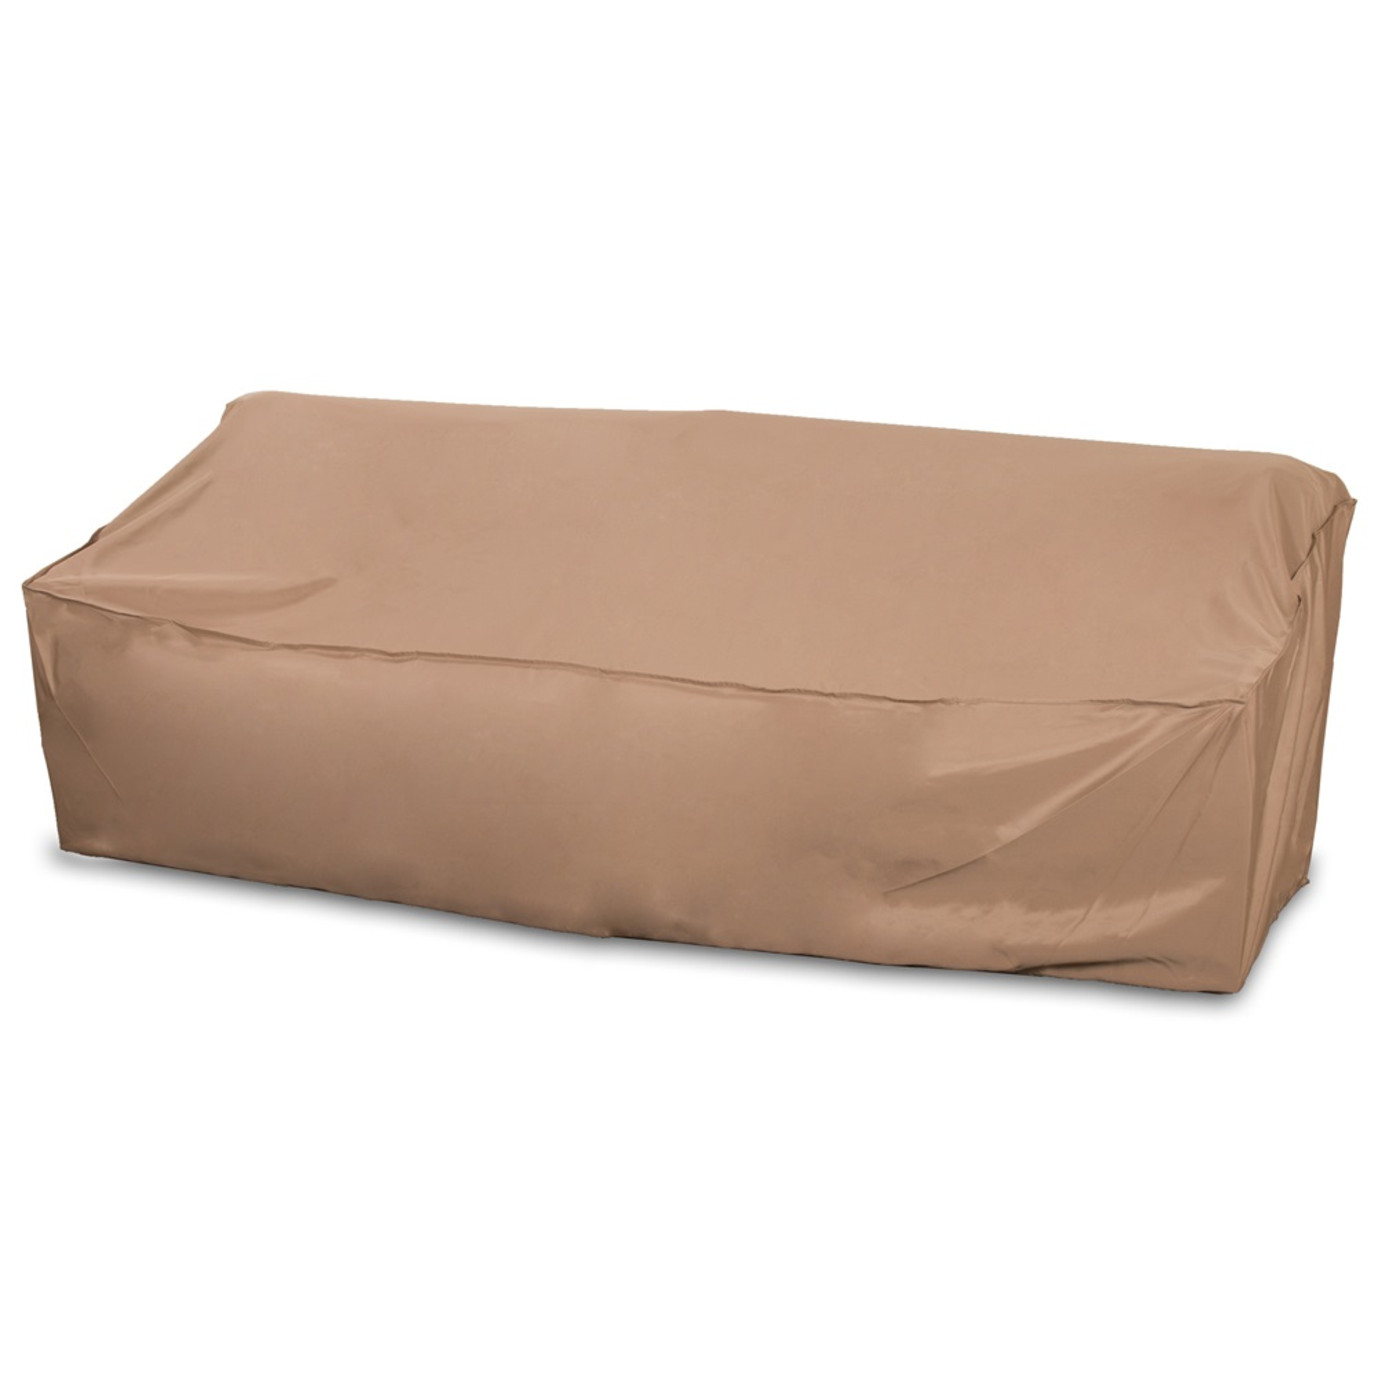 Portofino®/Vistano® 76in Sofa Furniture Cover